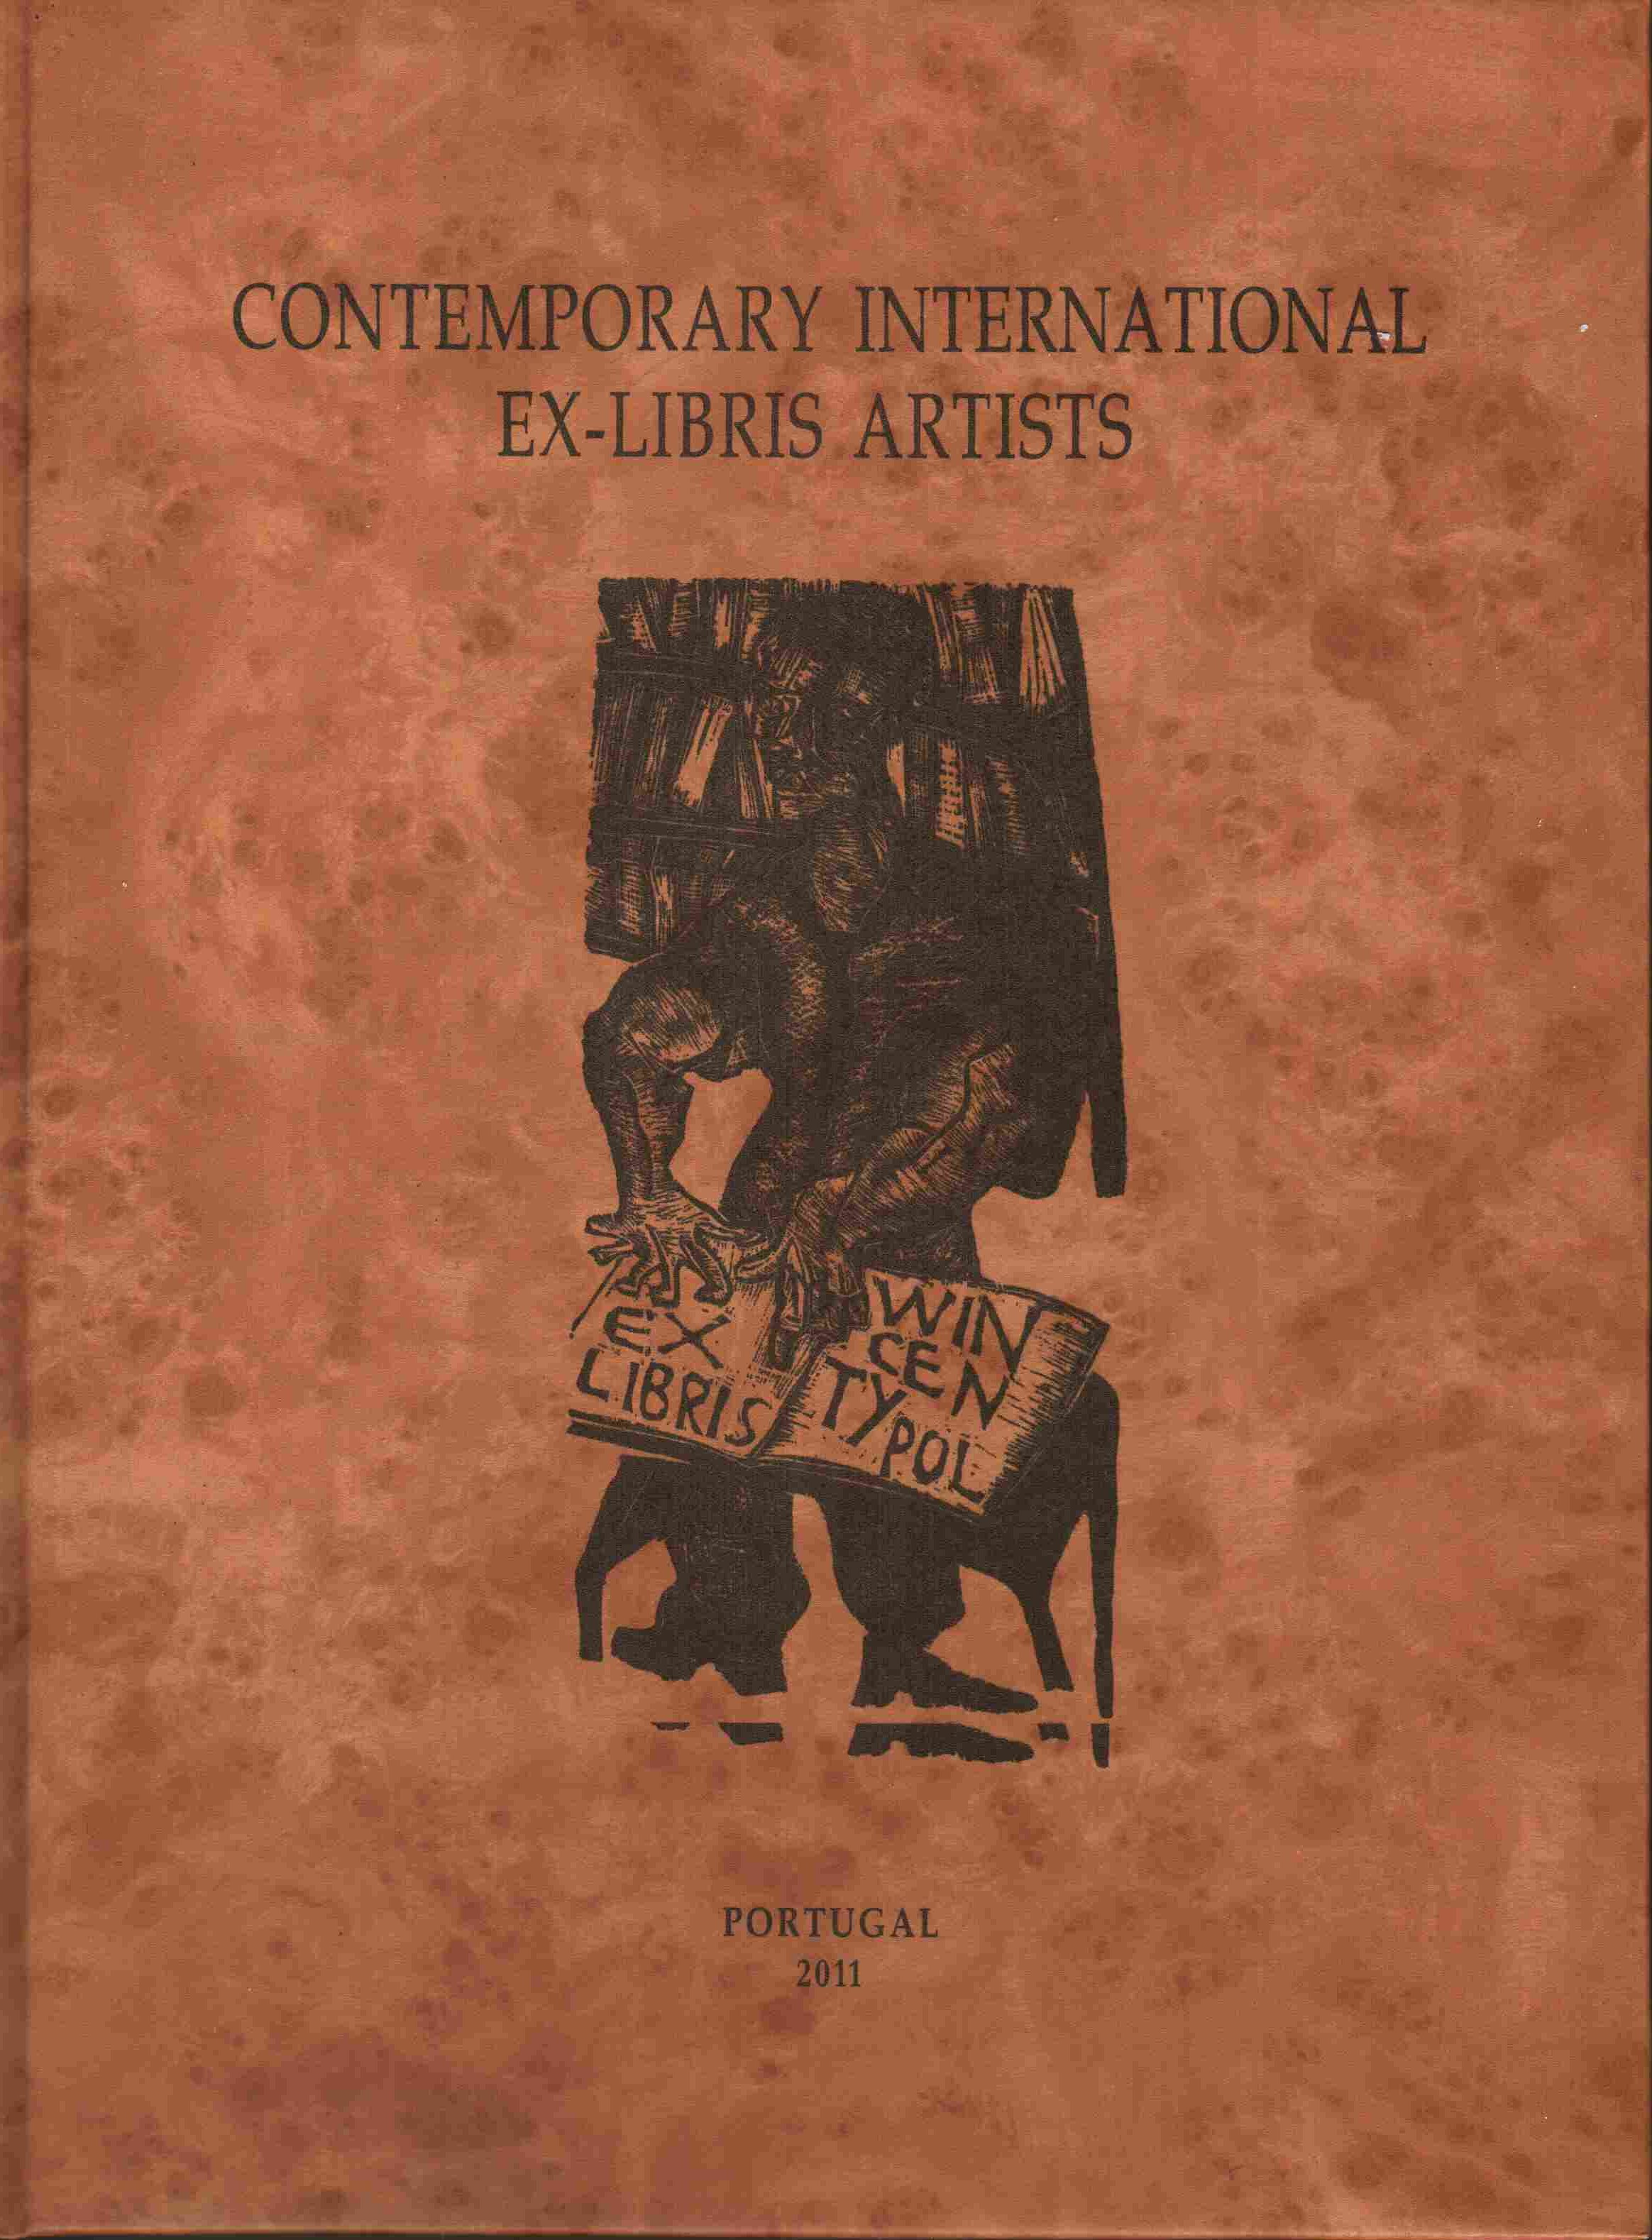 Contemporary International Ex-Libris Artists, n°14. In copertina, ex libris di Marcos Varela per Wincenty Pol, X2, 2007.